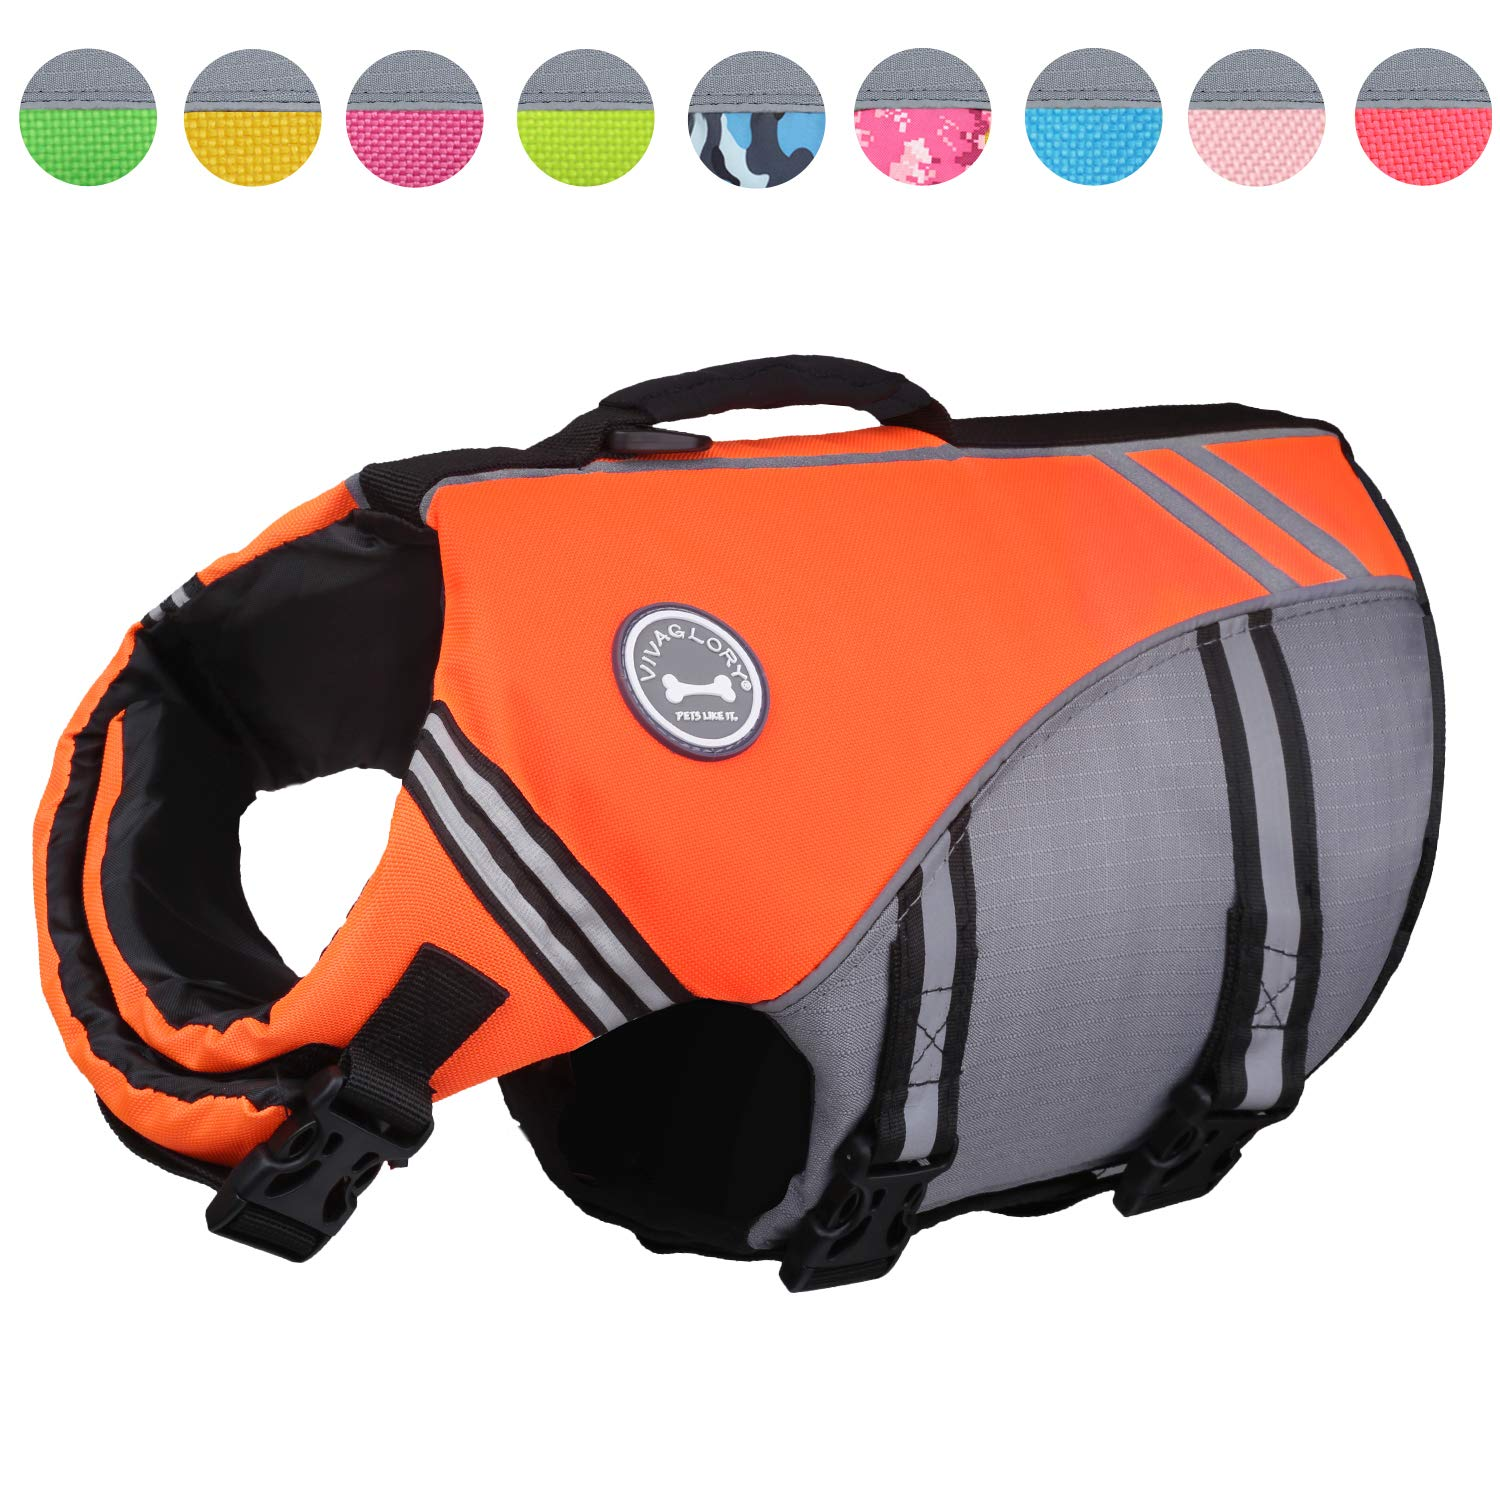 Vivaglory New Sports Style Ripstop Dog Life Jacket with Superior Buoyancy & Rescue Handle, Bright Orange, M by Vivaglory